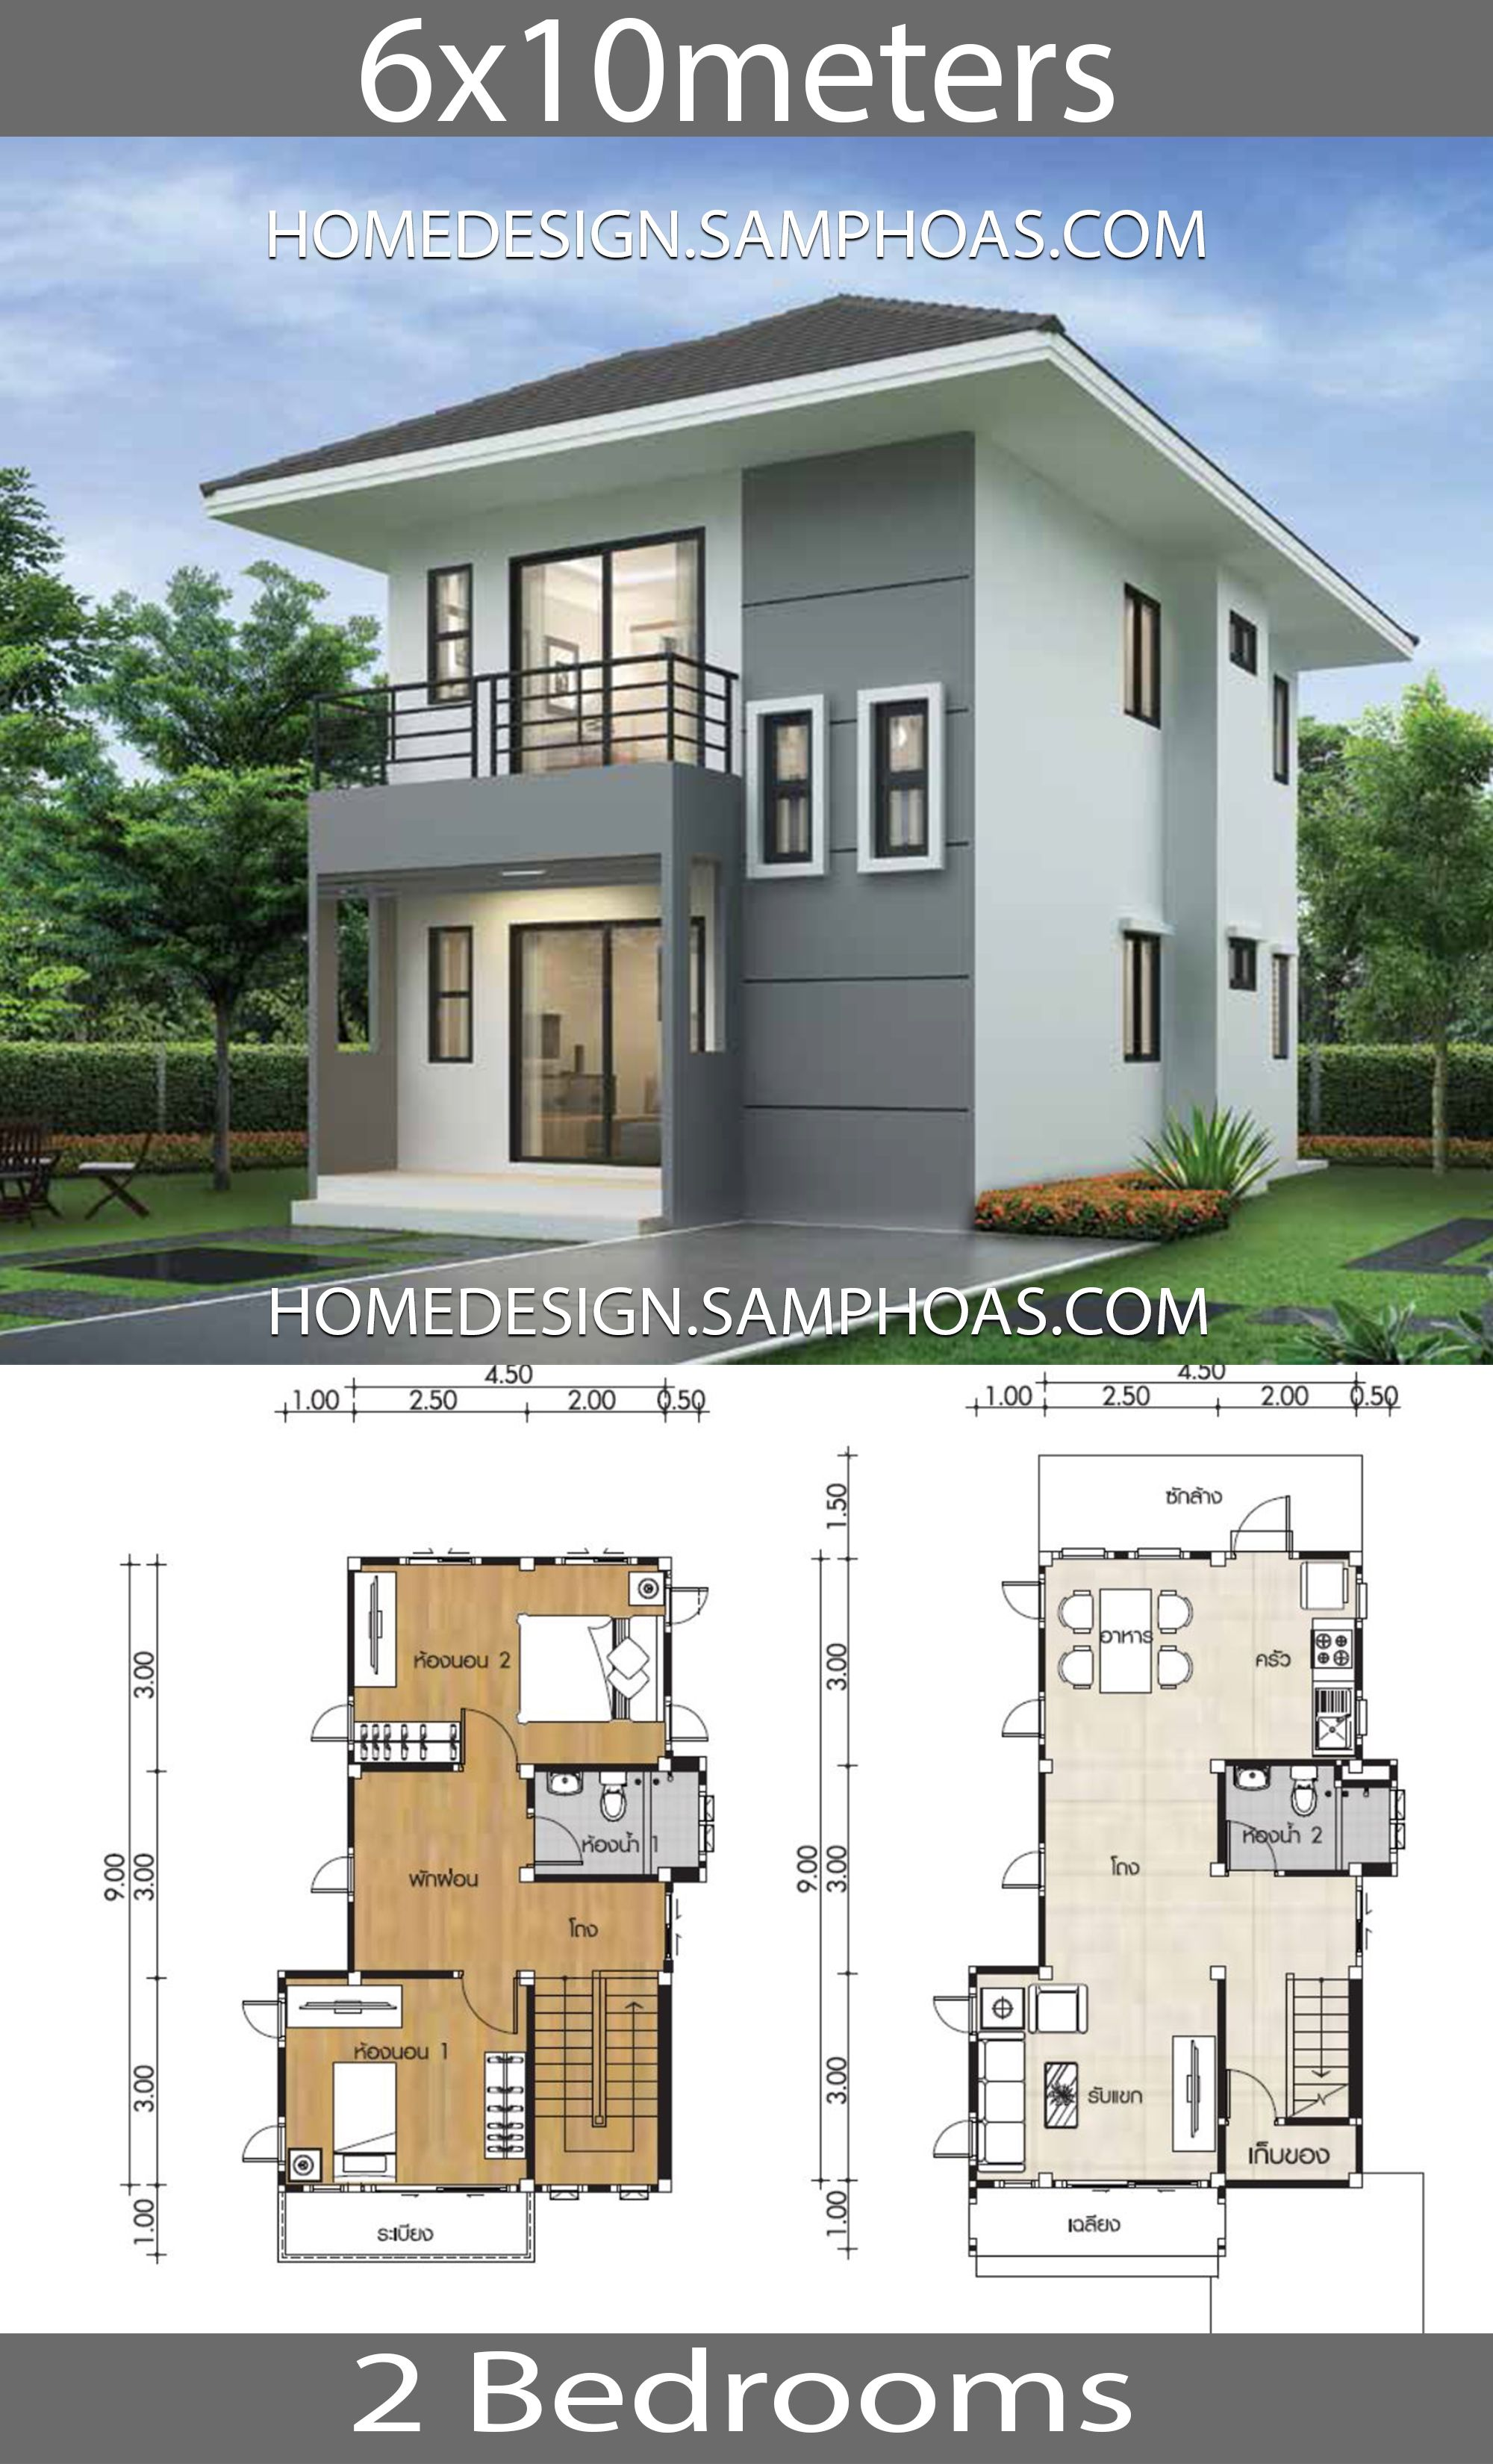 20 House Design With Layout Plans You Wish To See House Plans 3d Architectural House Plans Small House Design Plans Home Design Plans